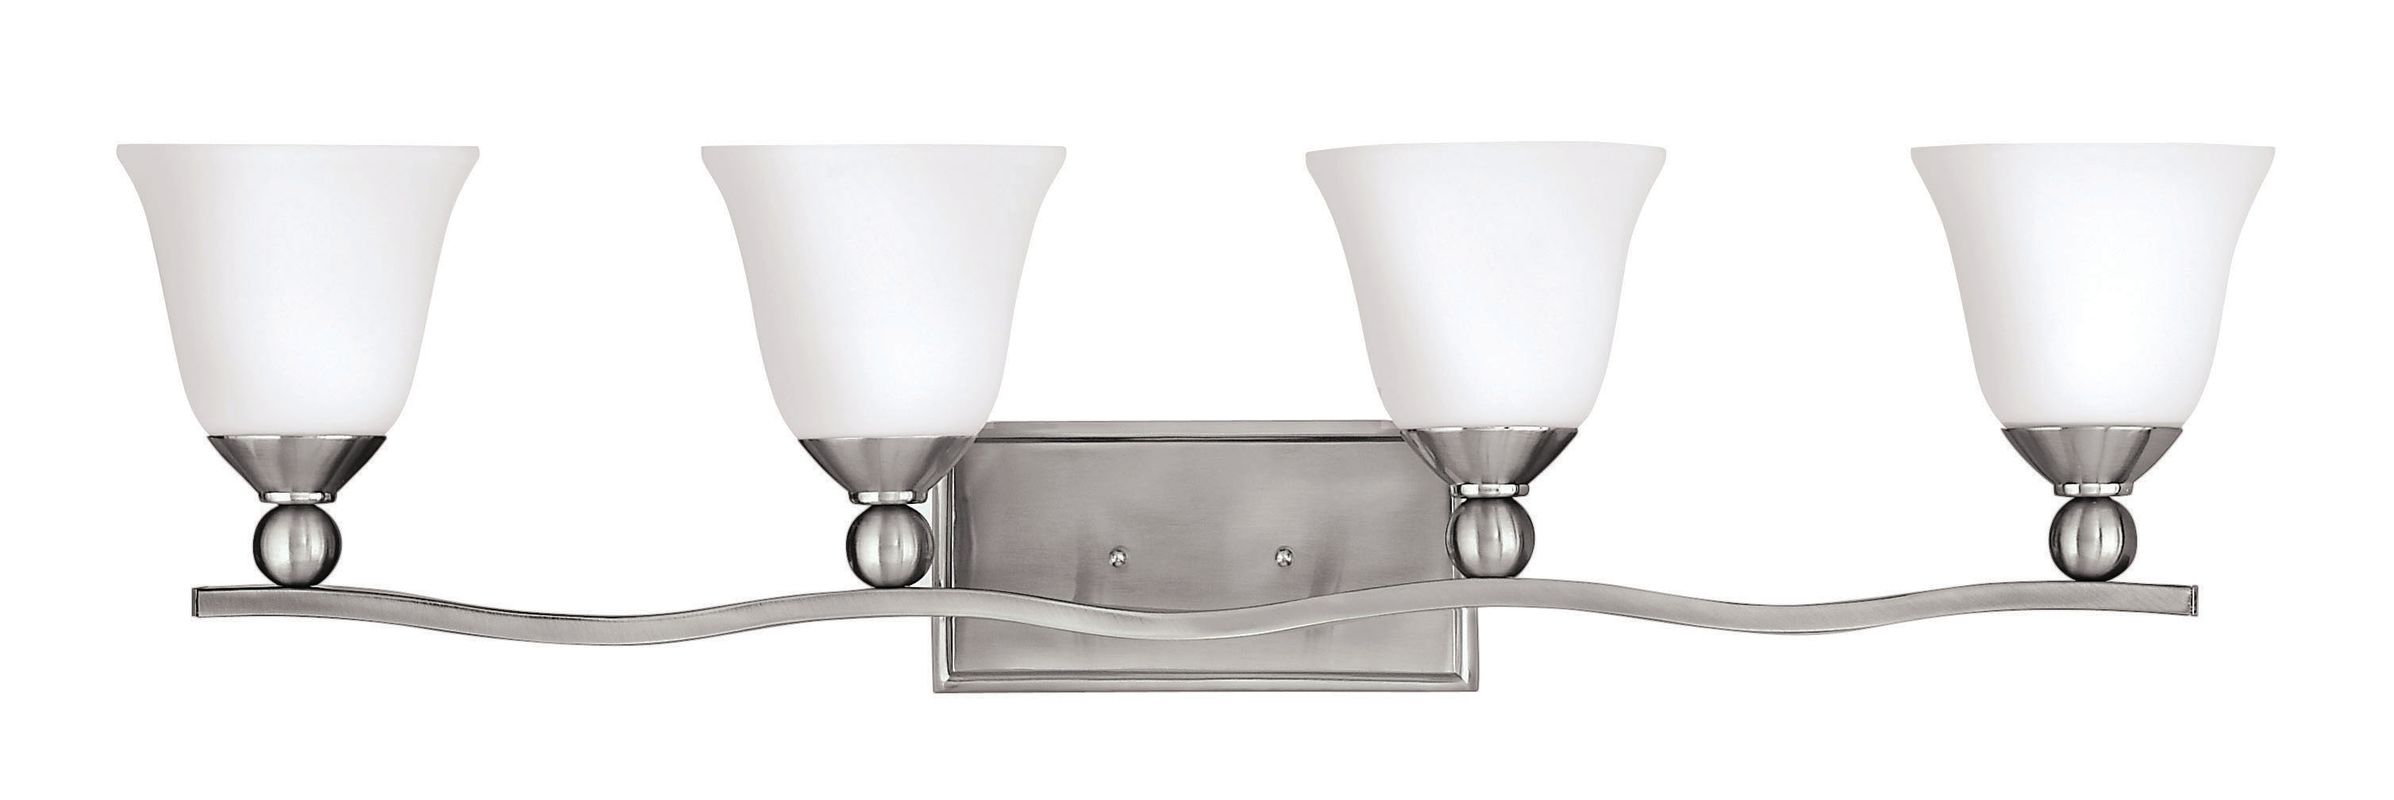 Hinkley Lighting 5894-GU24 4 Light Title 24 Fluorescent Bathroom Sale $289.00 ITEM#: 2635609 MODEL# :5894BN-GU24 UPC#: 640665589467 :